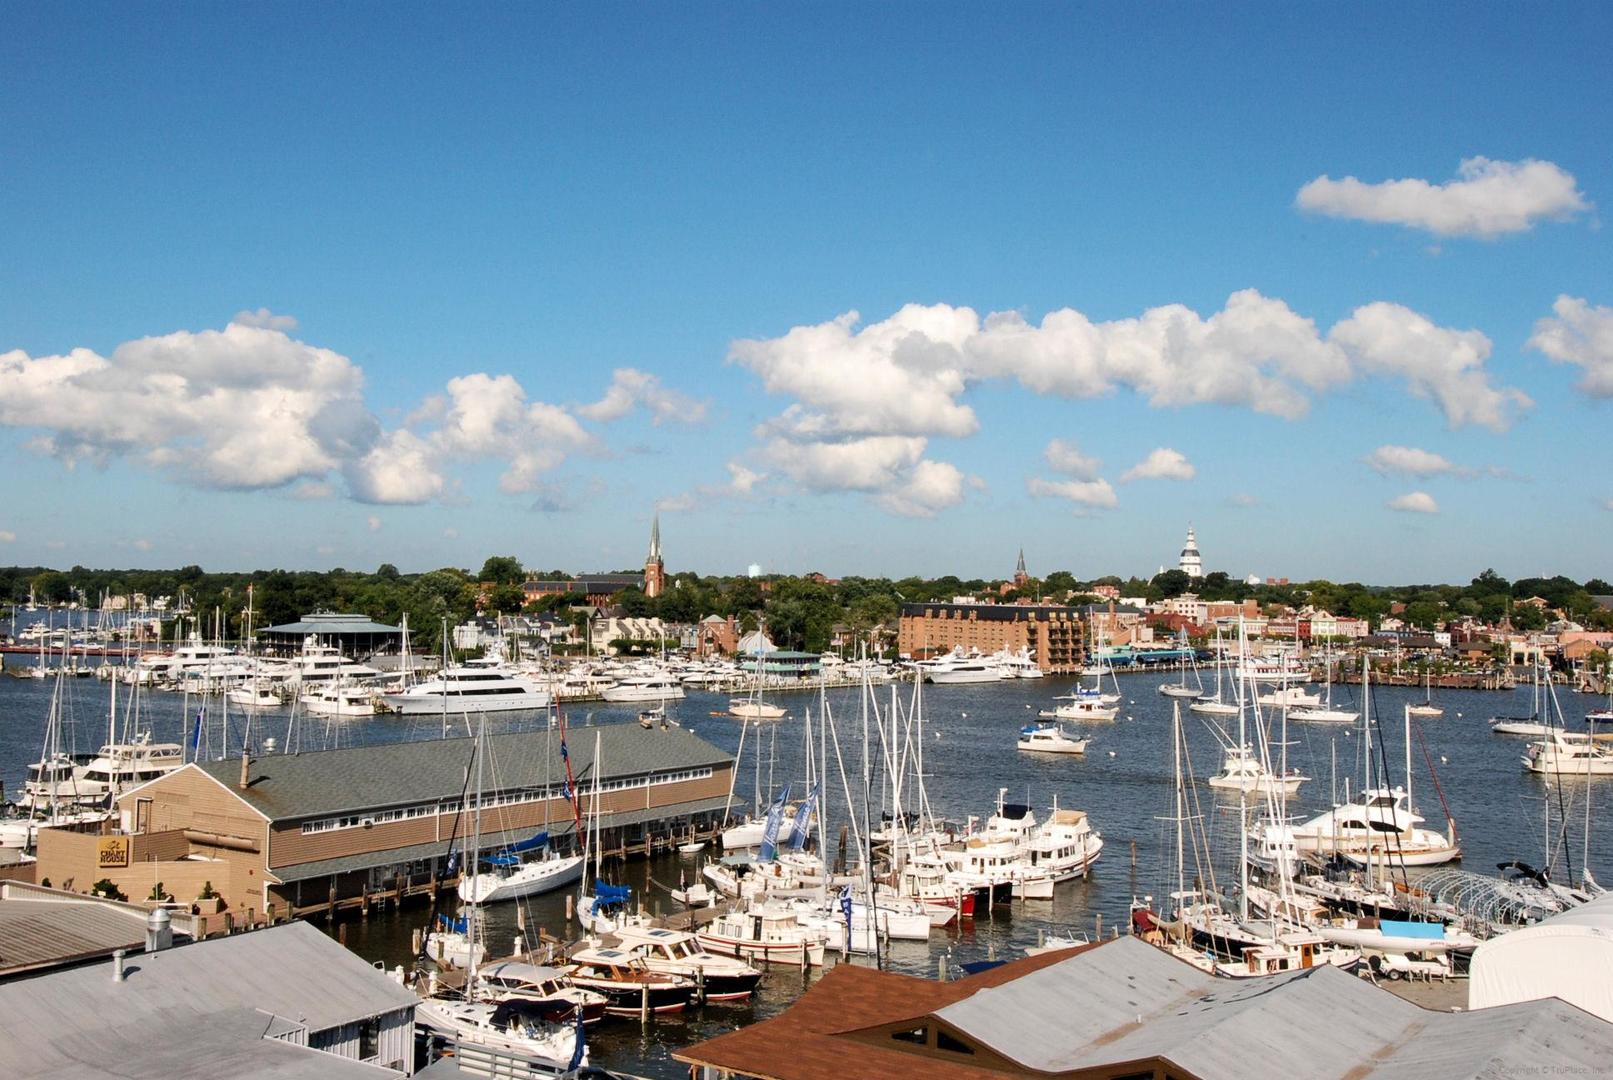 Annapolis Harbor and Marina